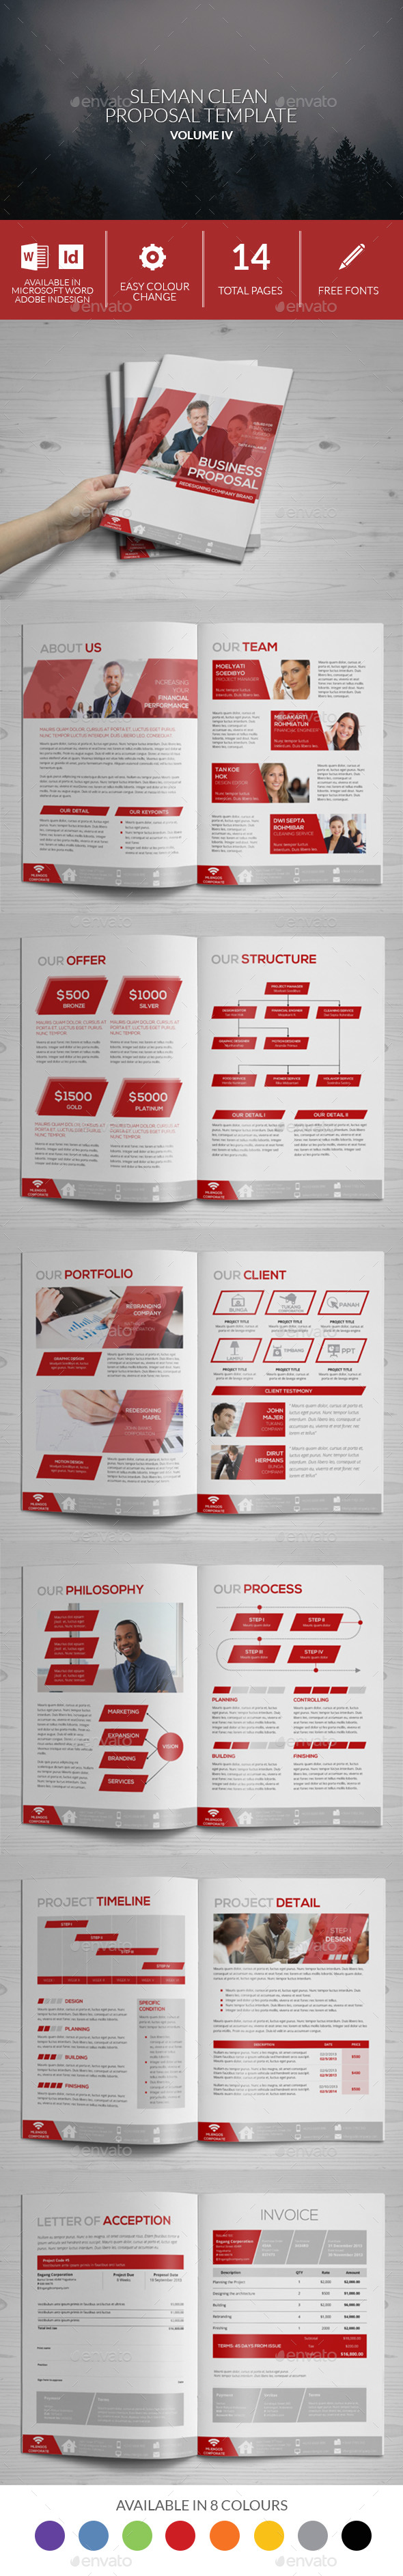 Sleman Clean Proposal Template Volume 4 - Proposals & Invoices Stationery